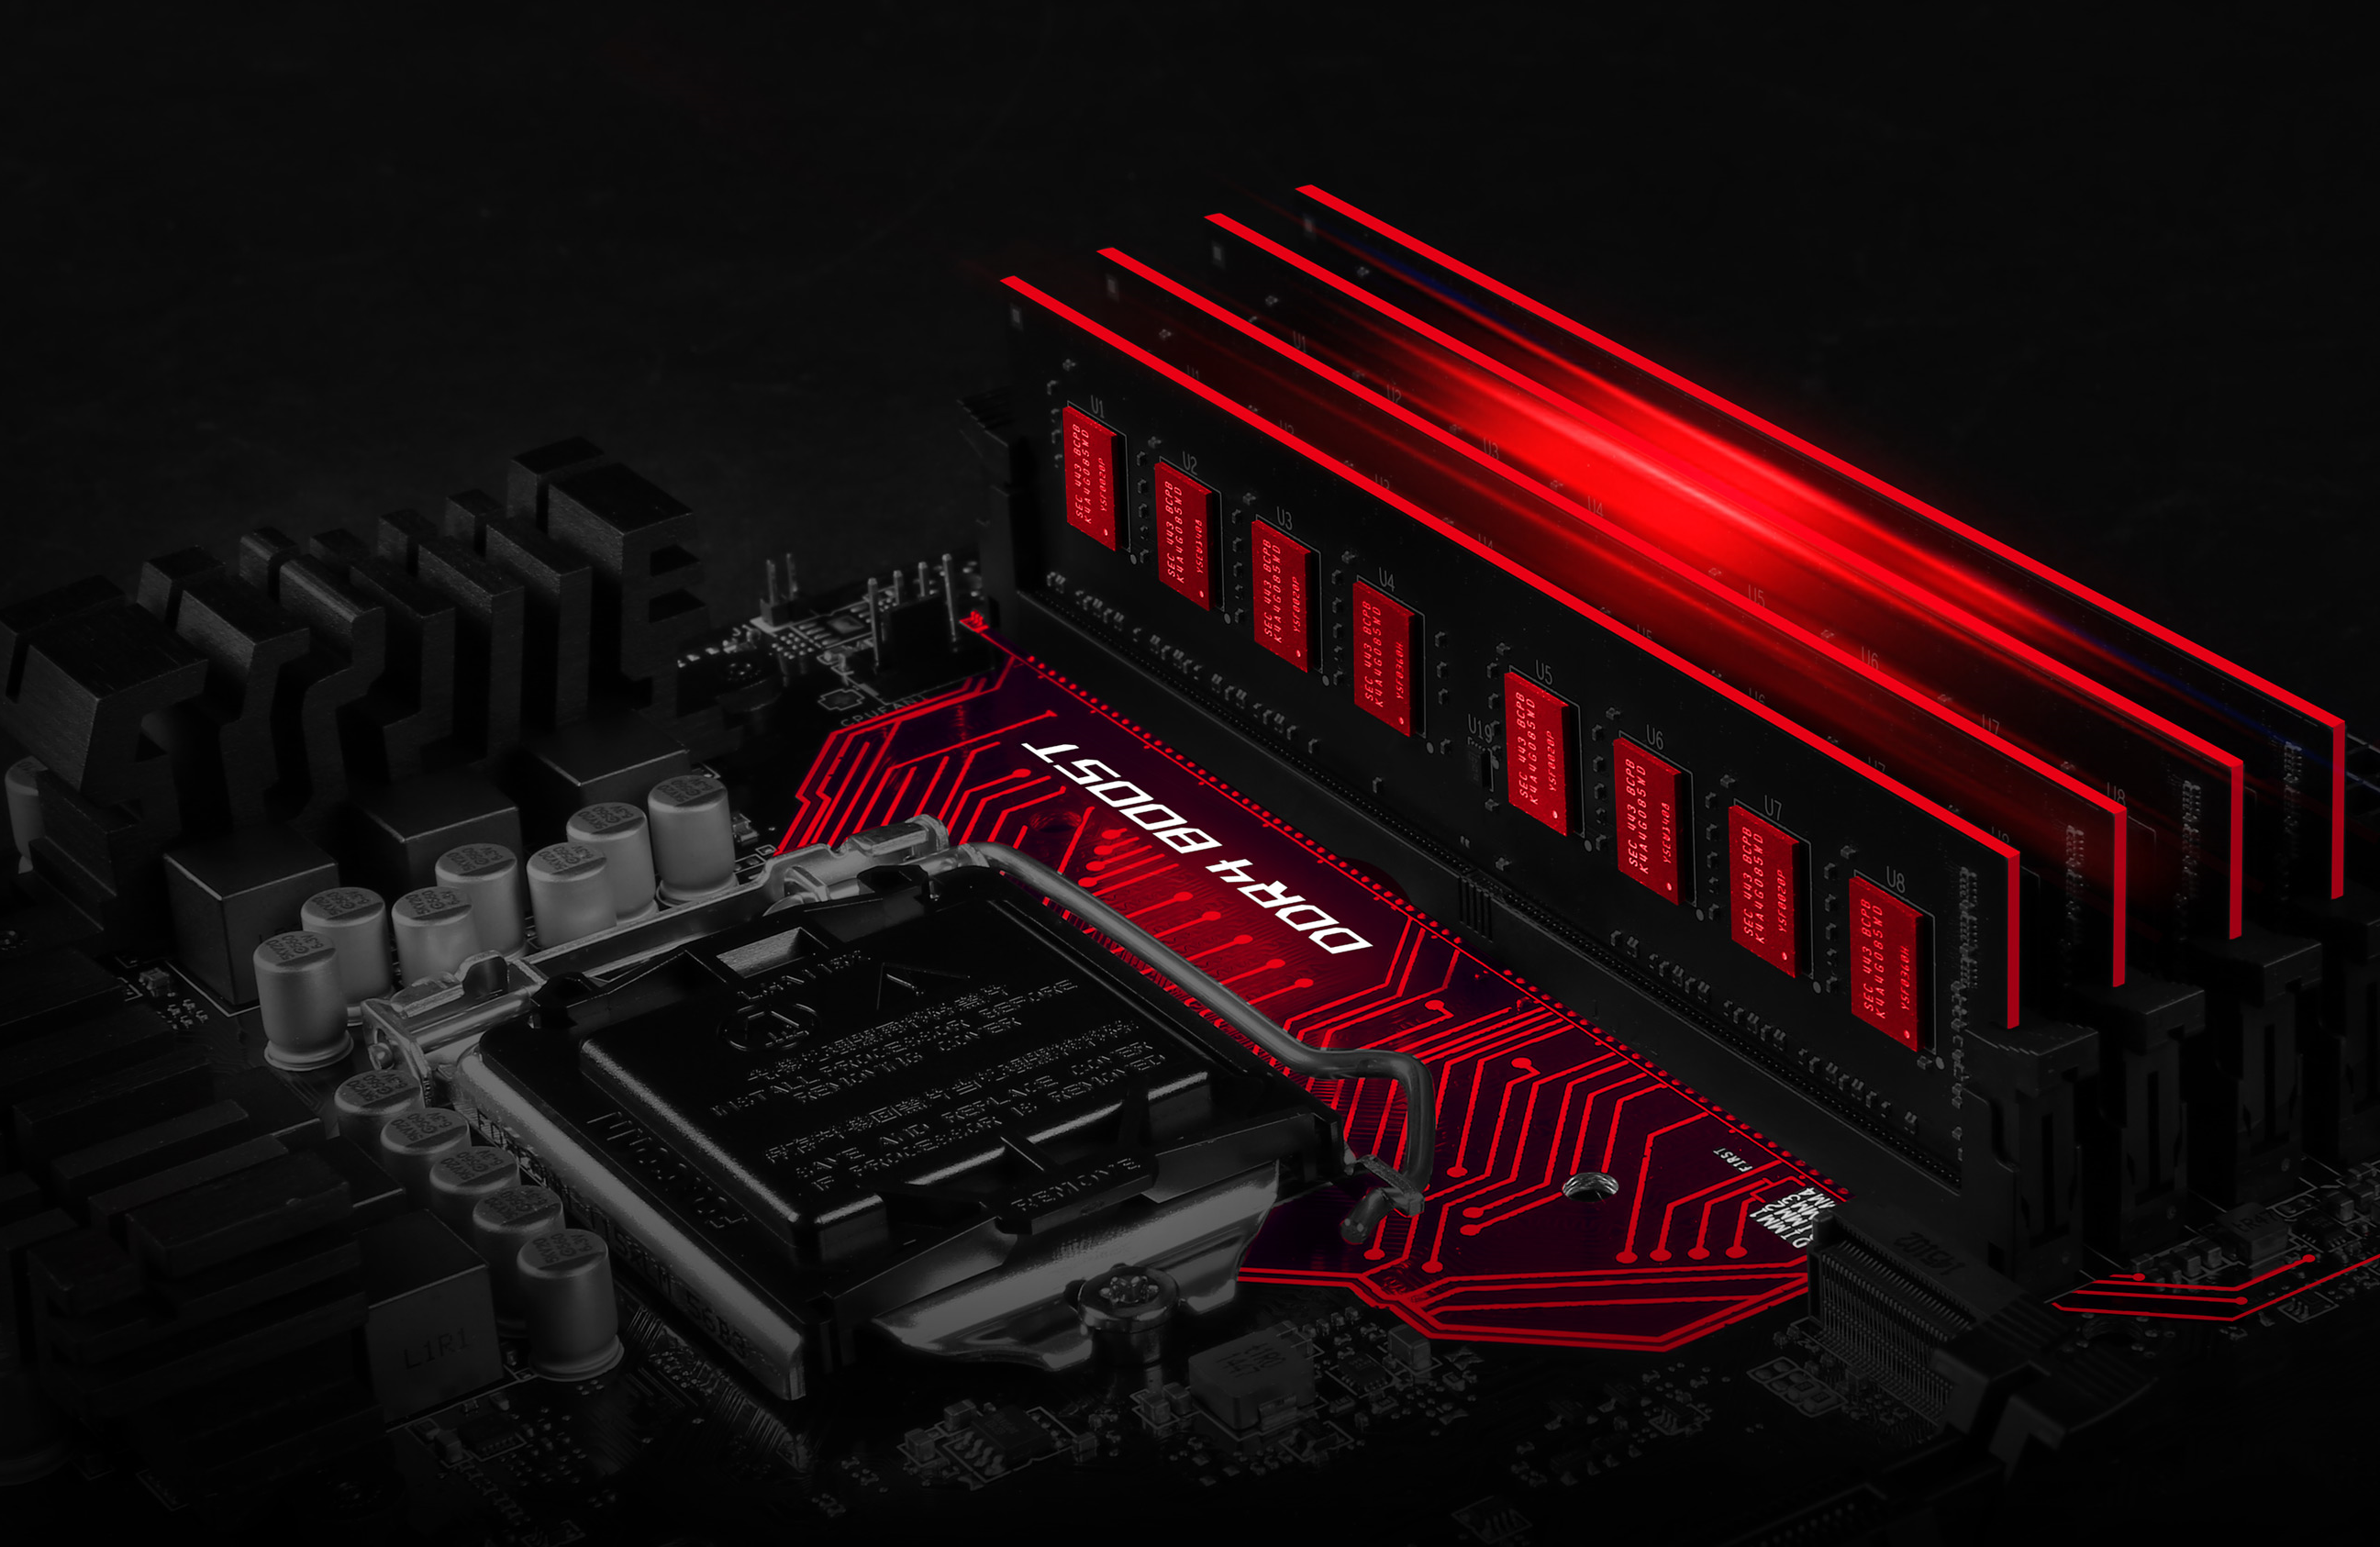 DDR4 BOOST: WHAT IS IT EXACTLY?